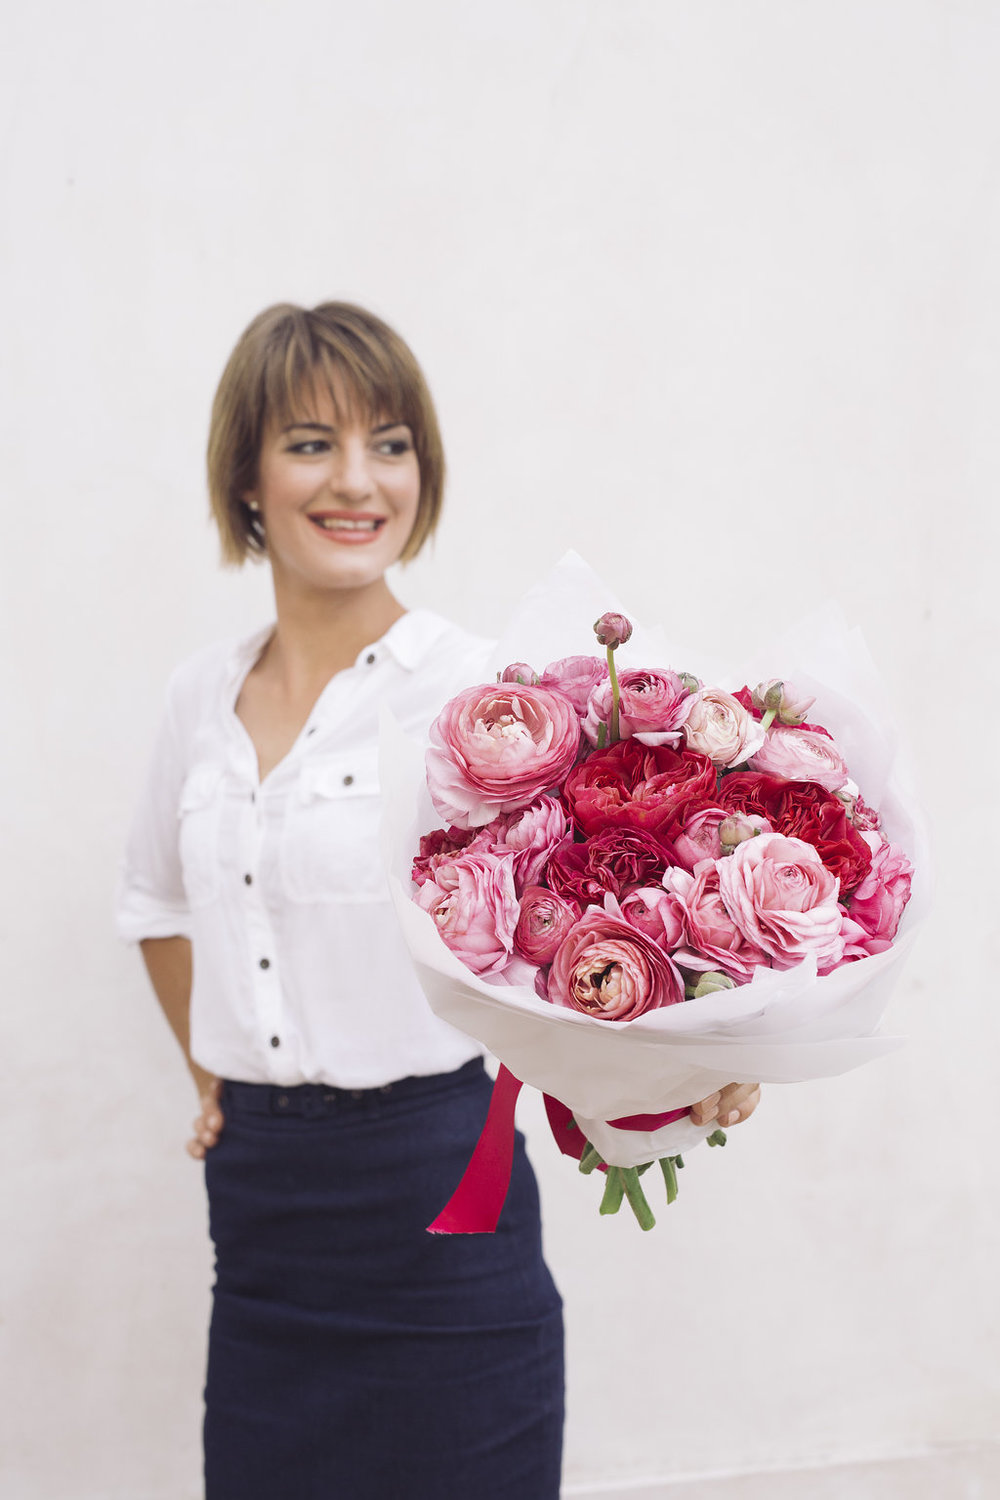 Local Darwin florist, Maria Okwa of Beija Flor delivers flowers to Darwin city on Mothers Day, photo by: George F